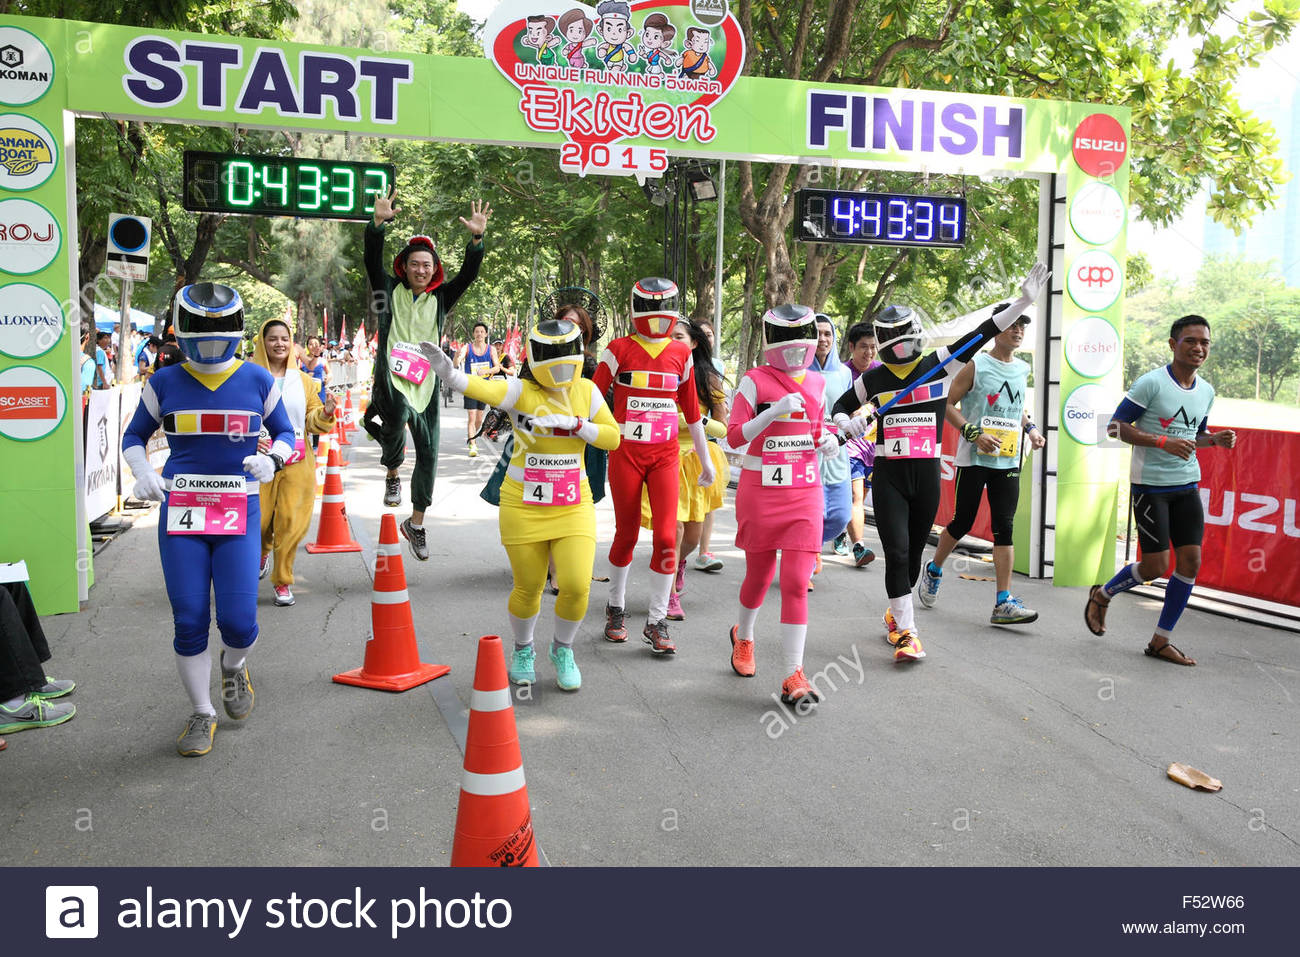 Bangkok - October 23: unidentified runner participates wearing fancy costume in Ekiden 2015 Marathon relay run fun - Stock Image